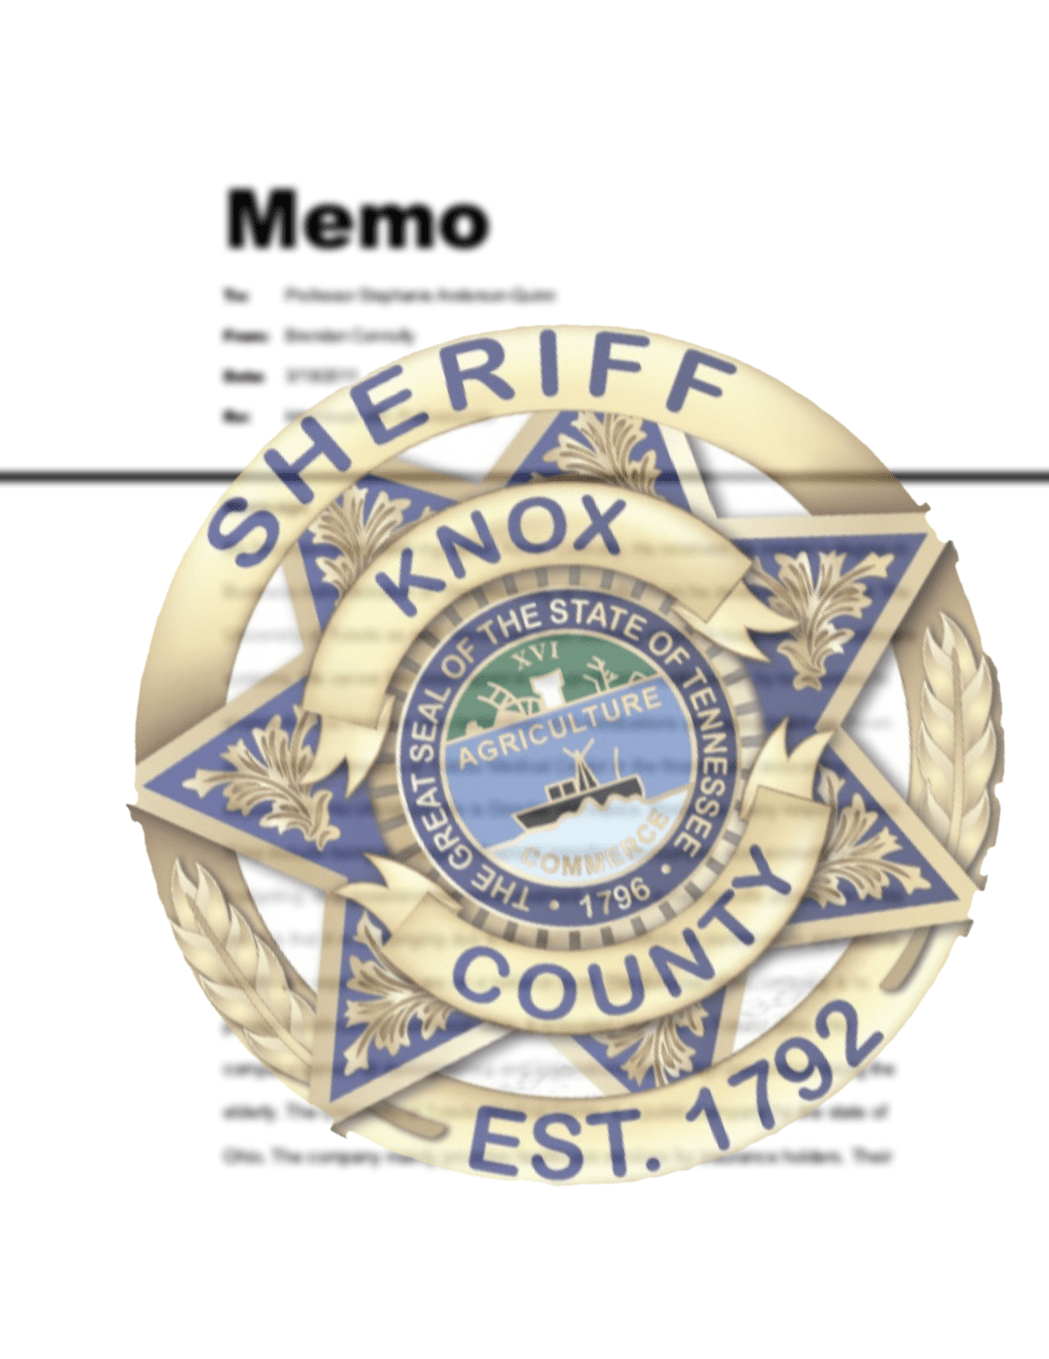 KCSO badge with memo paper in background